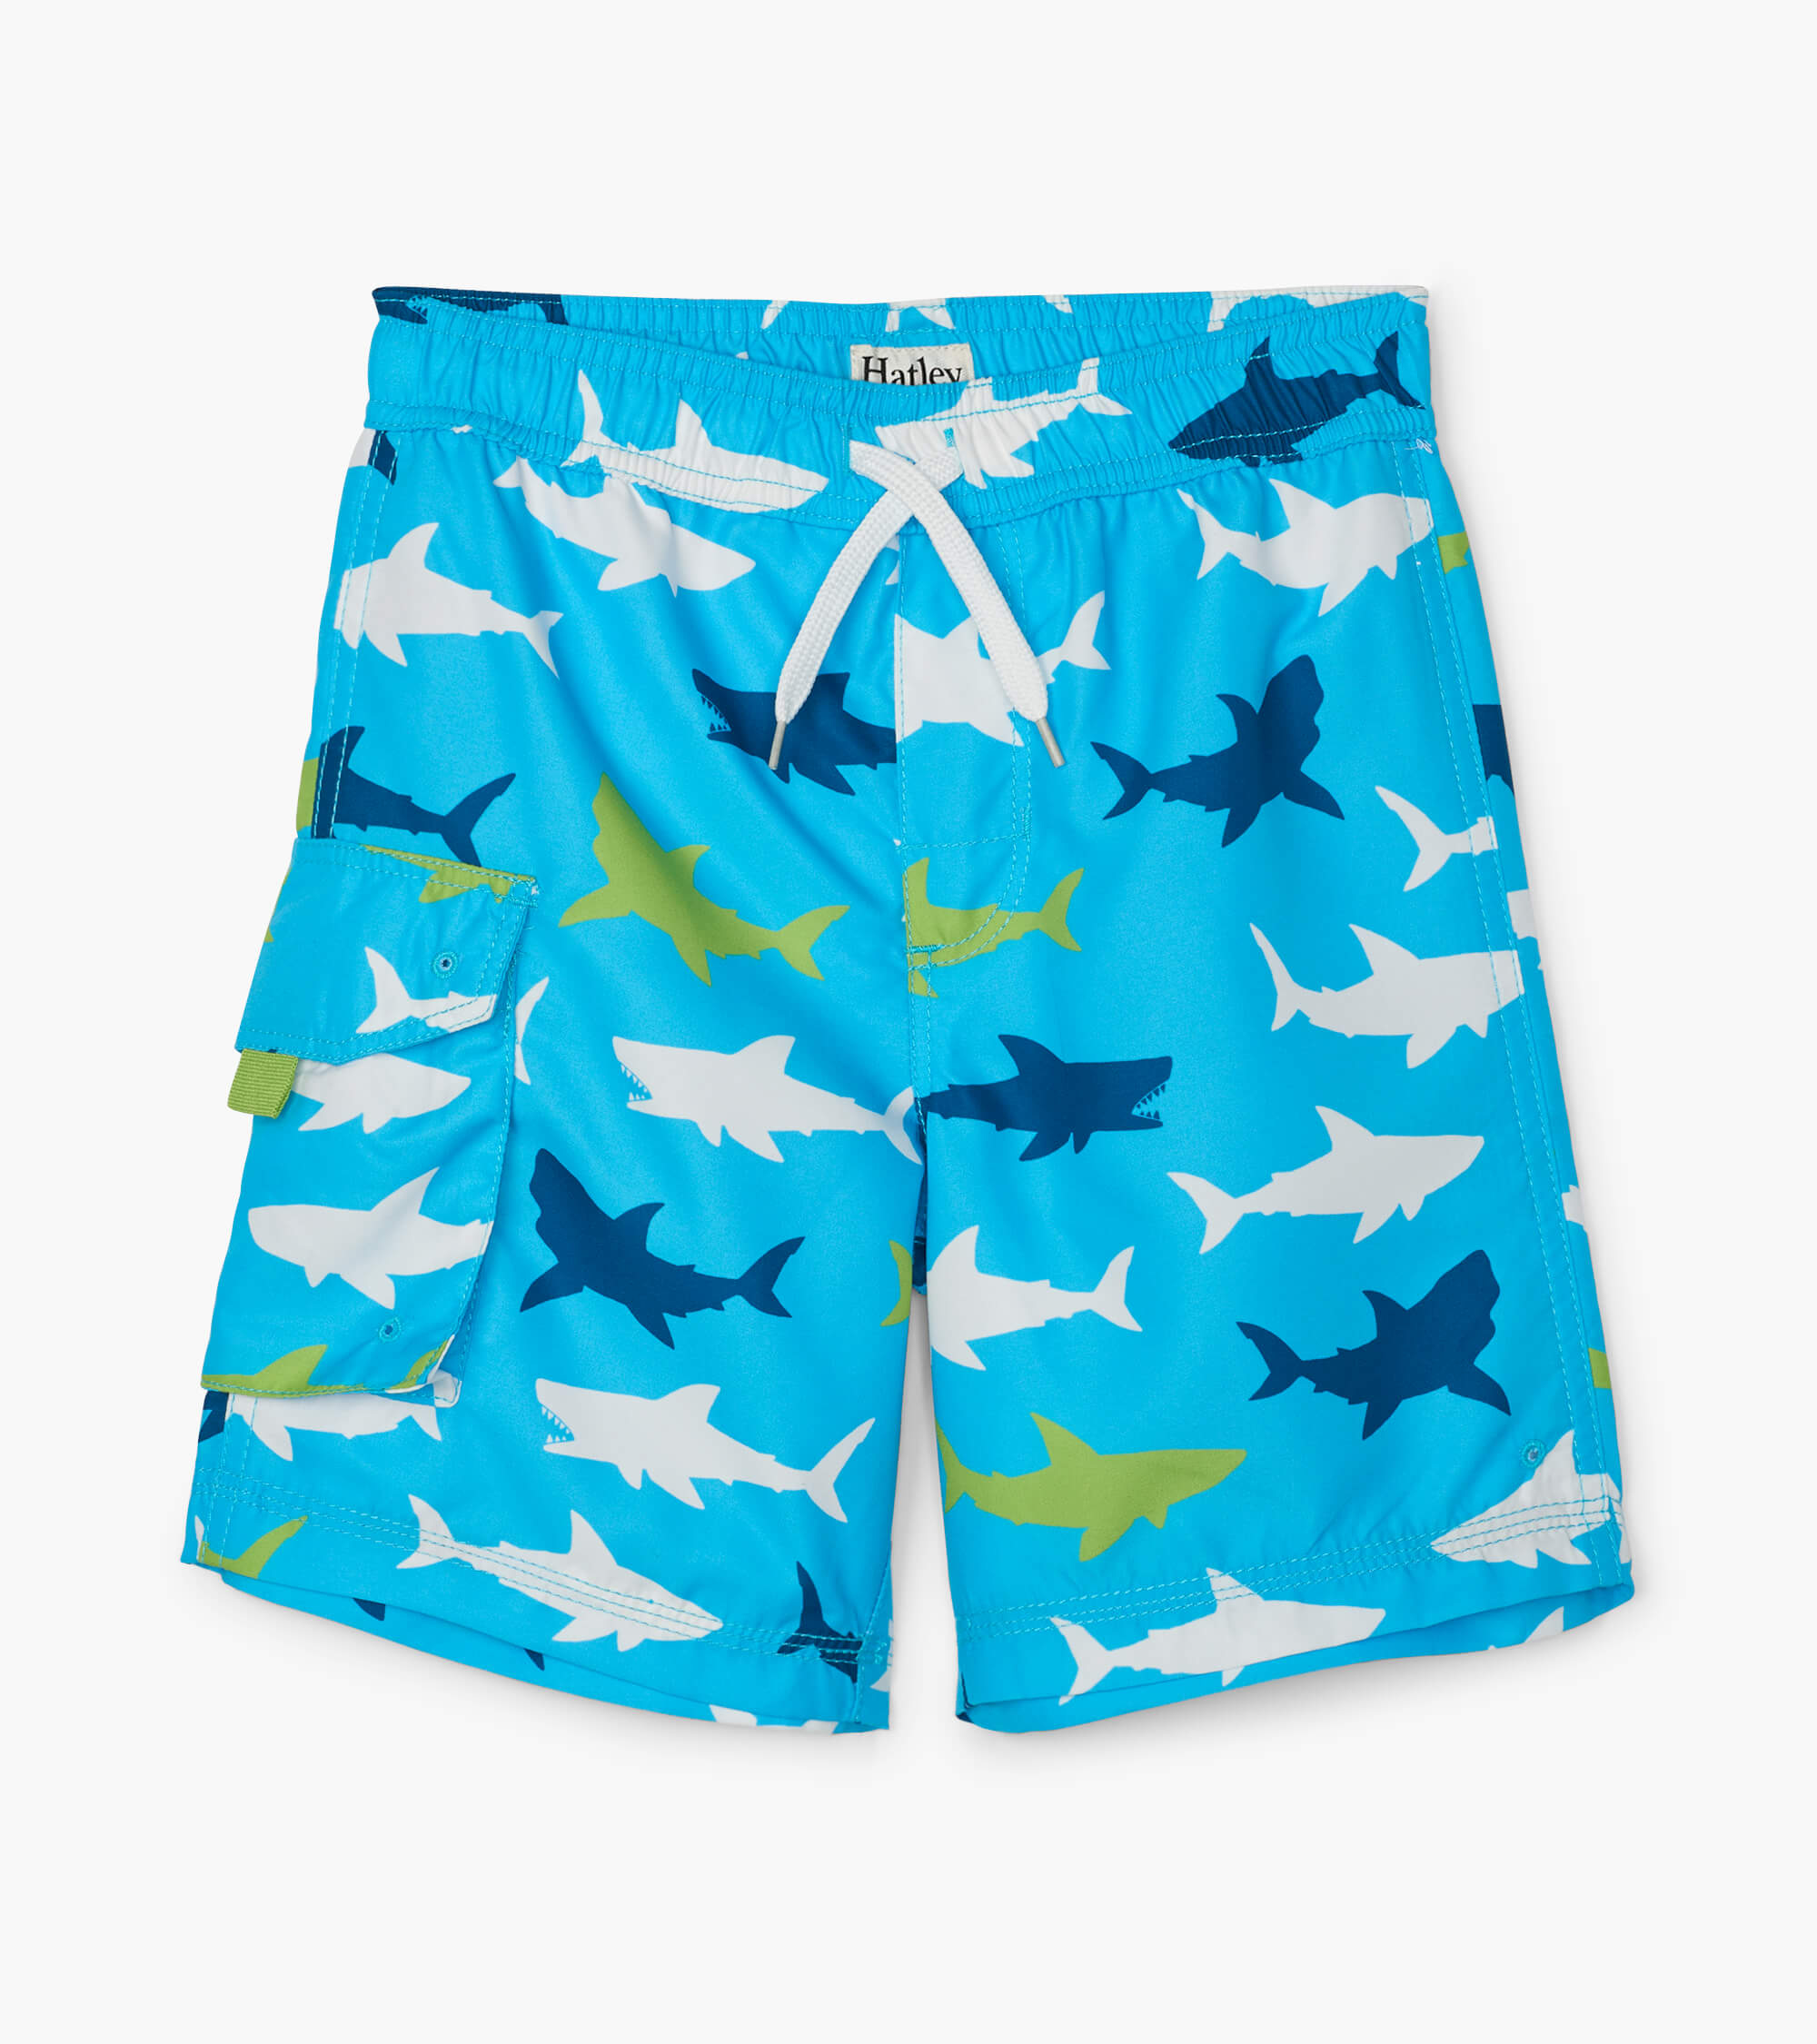 NOW £17 Hatley Great White Sharks Swim Trunks (was £25)